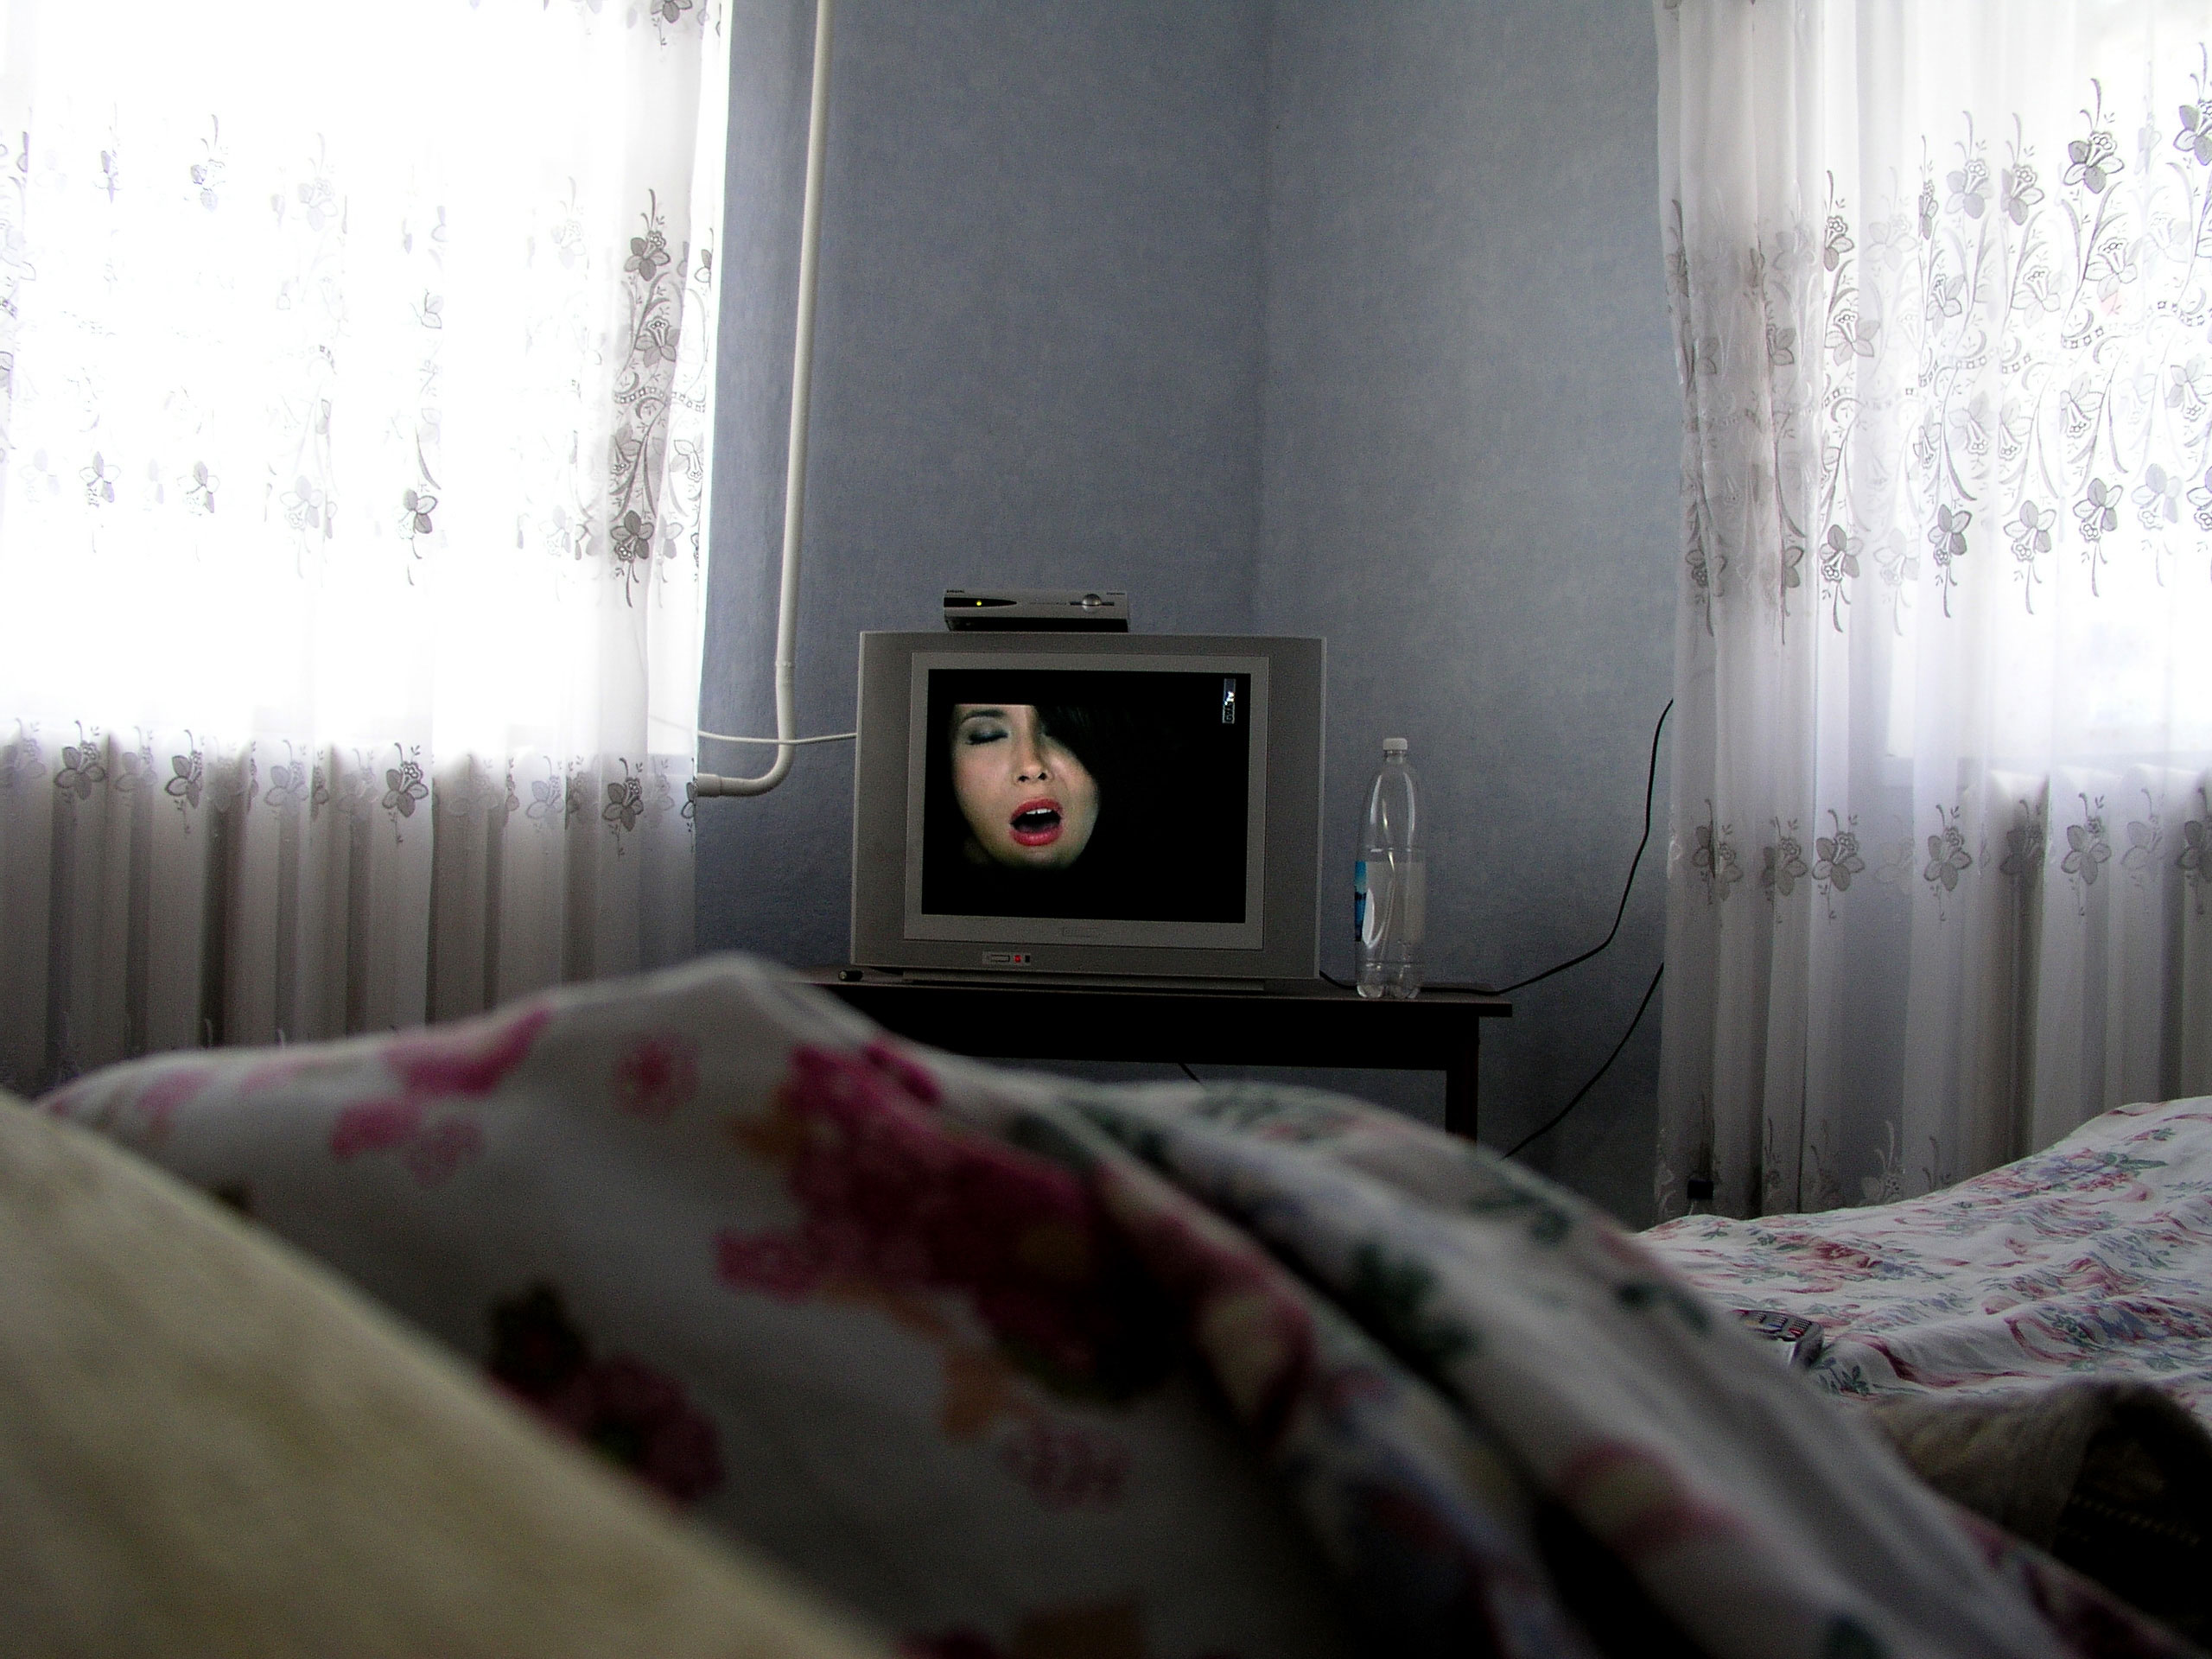 TV Scream